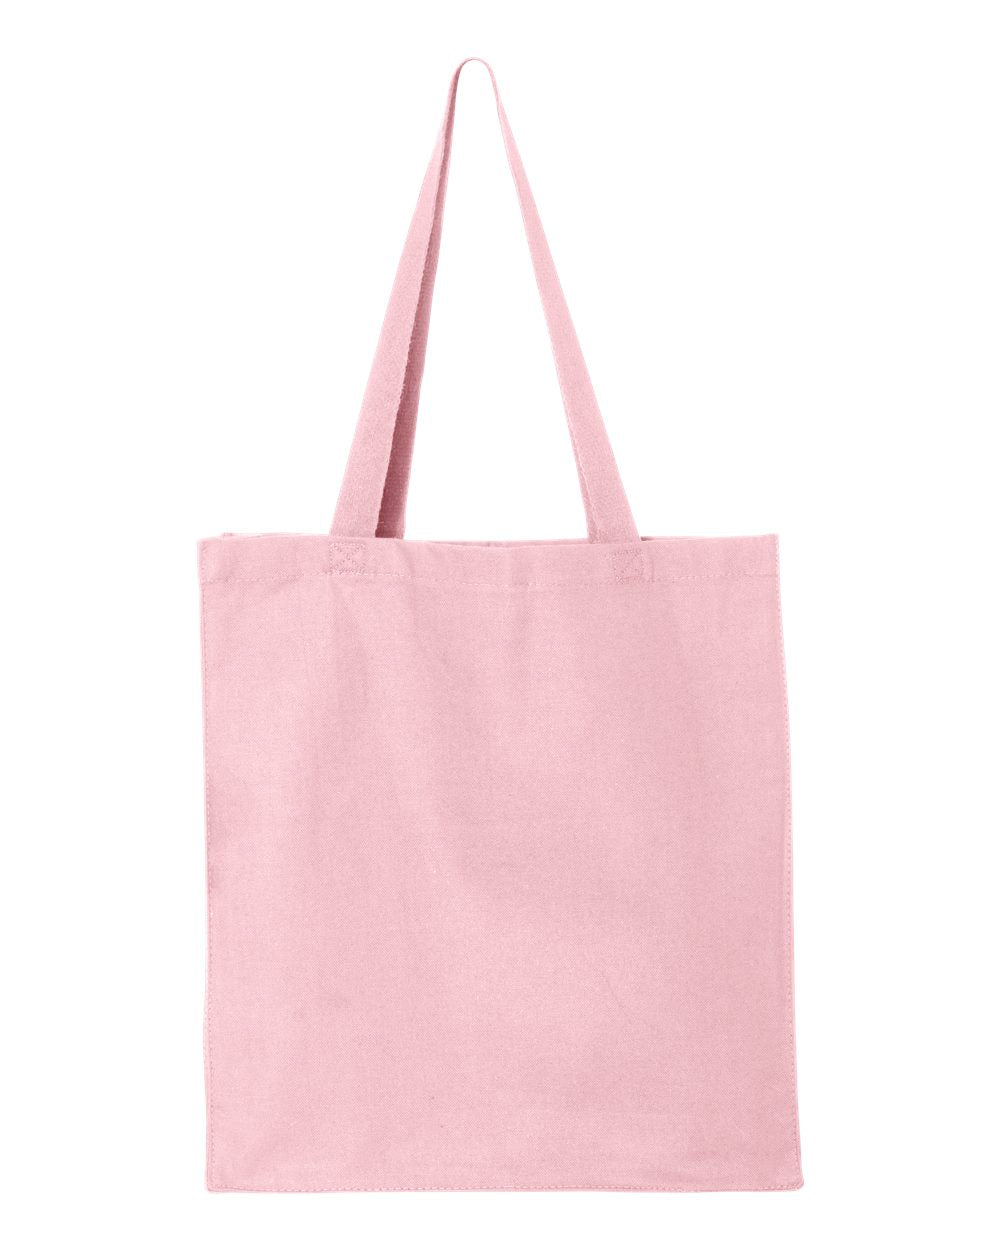 16fe05ccb7f Customizable Canvas Tote Bag - 14